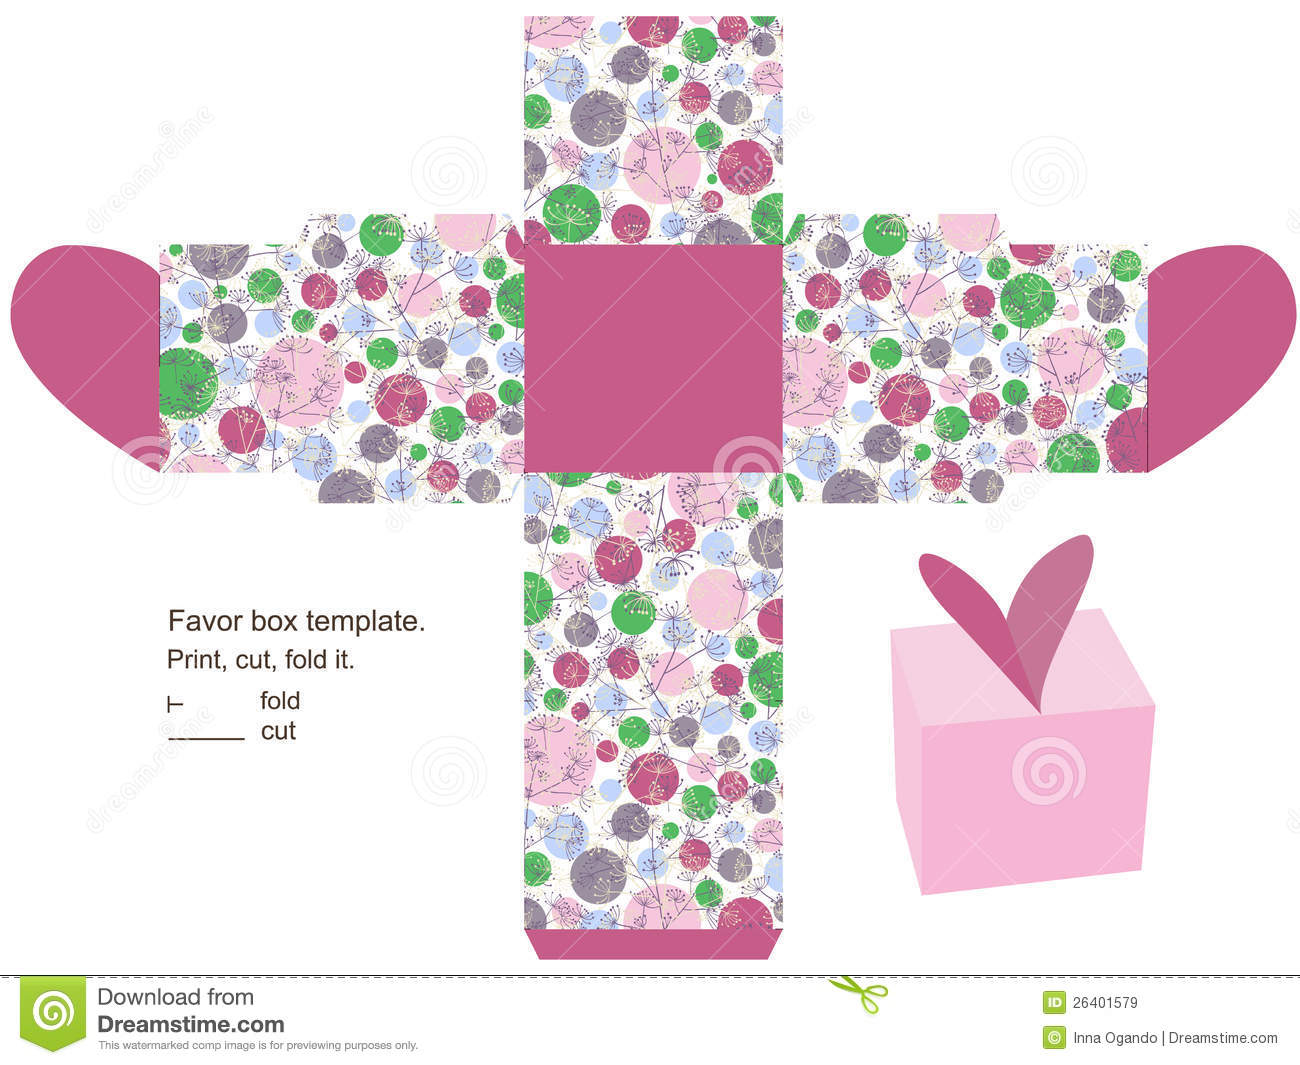 Wedding Gift Box Pattern : box favor floral gift herbs template lid package green container ...